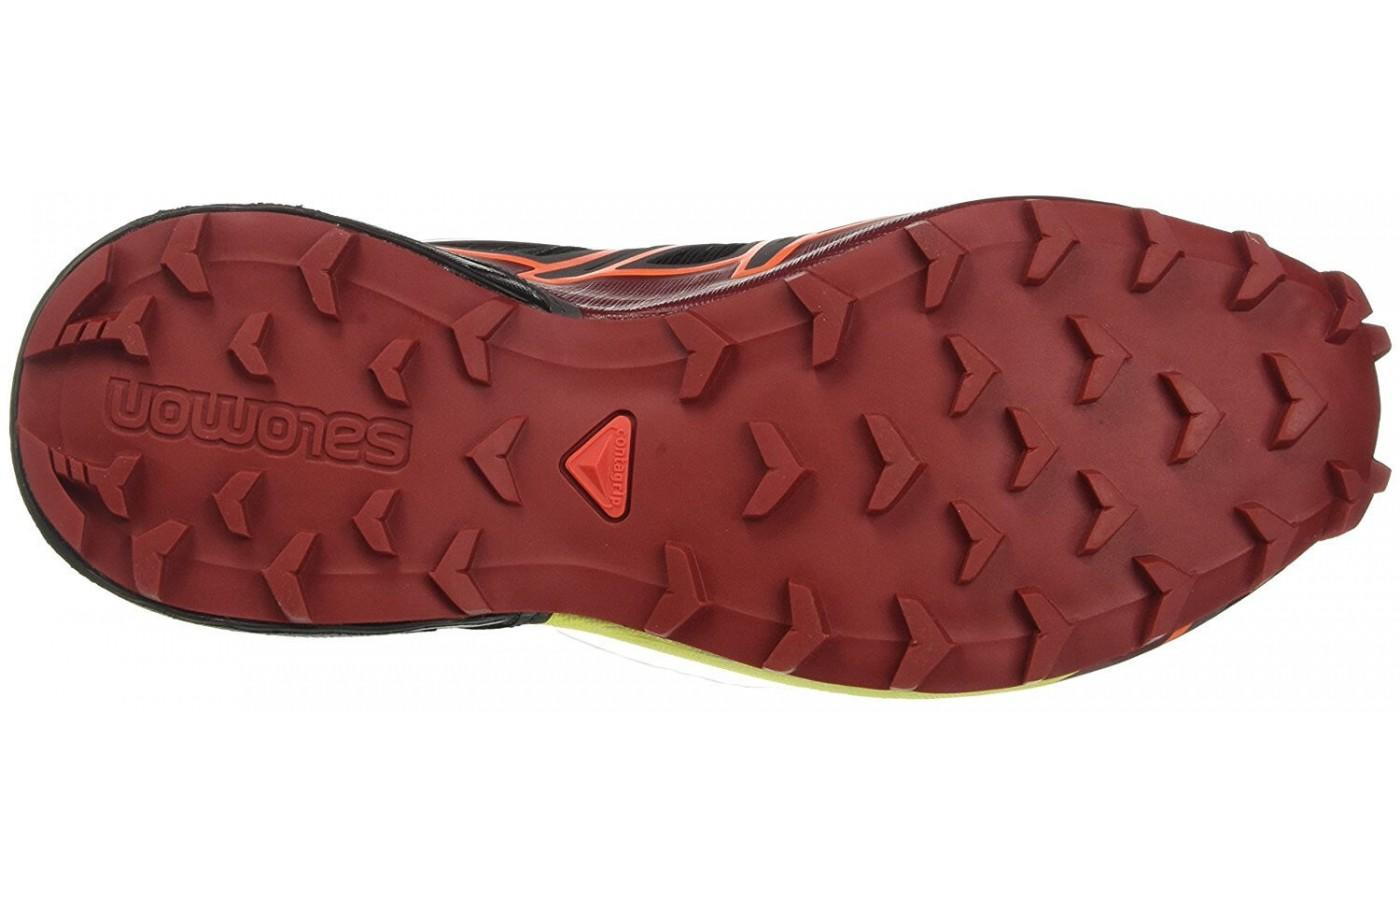 The outsole provides an aggressive lug system for superior traction